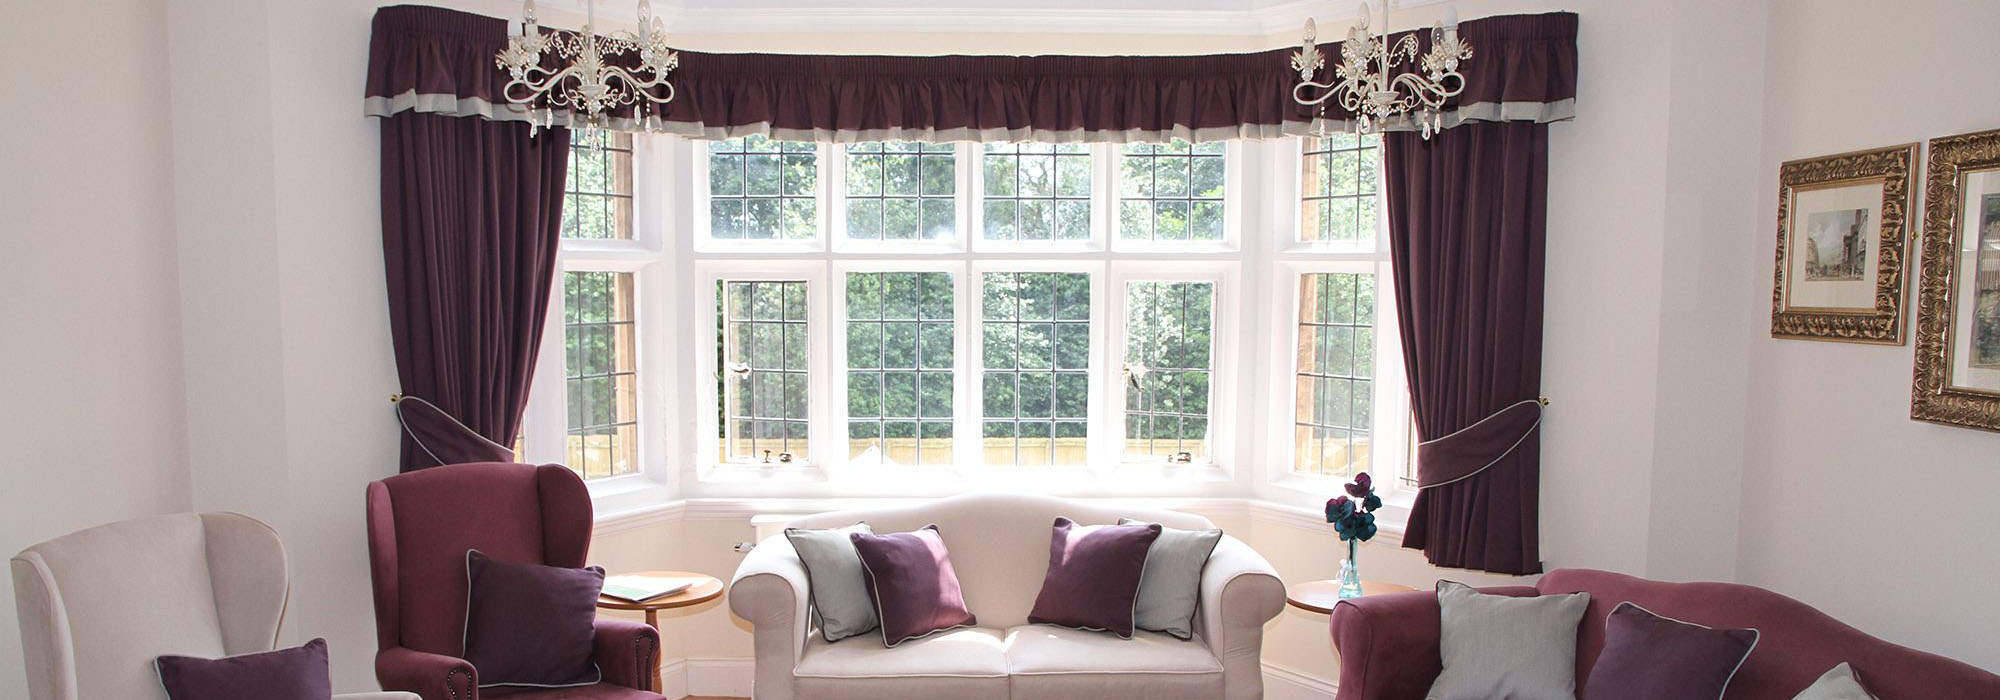 Nursing Homes Curtains & Soft Furnishings